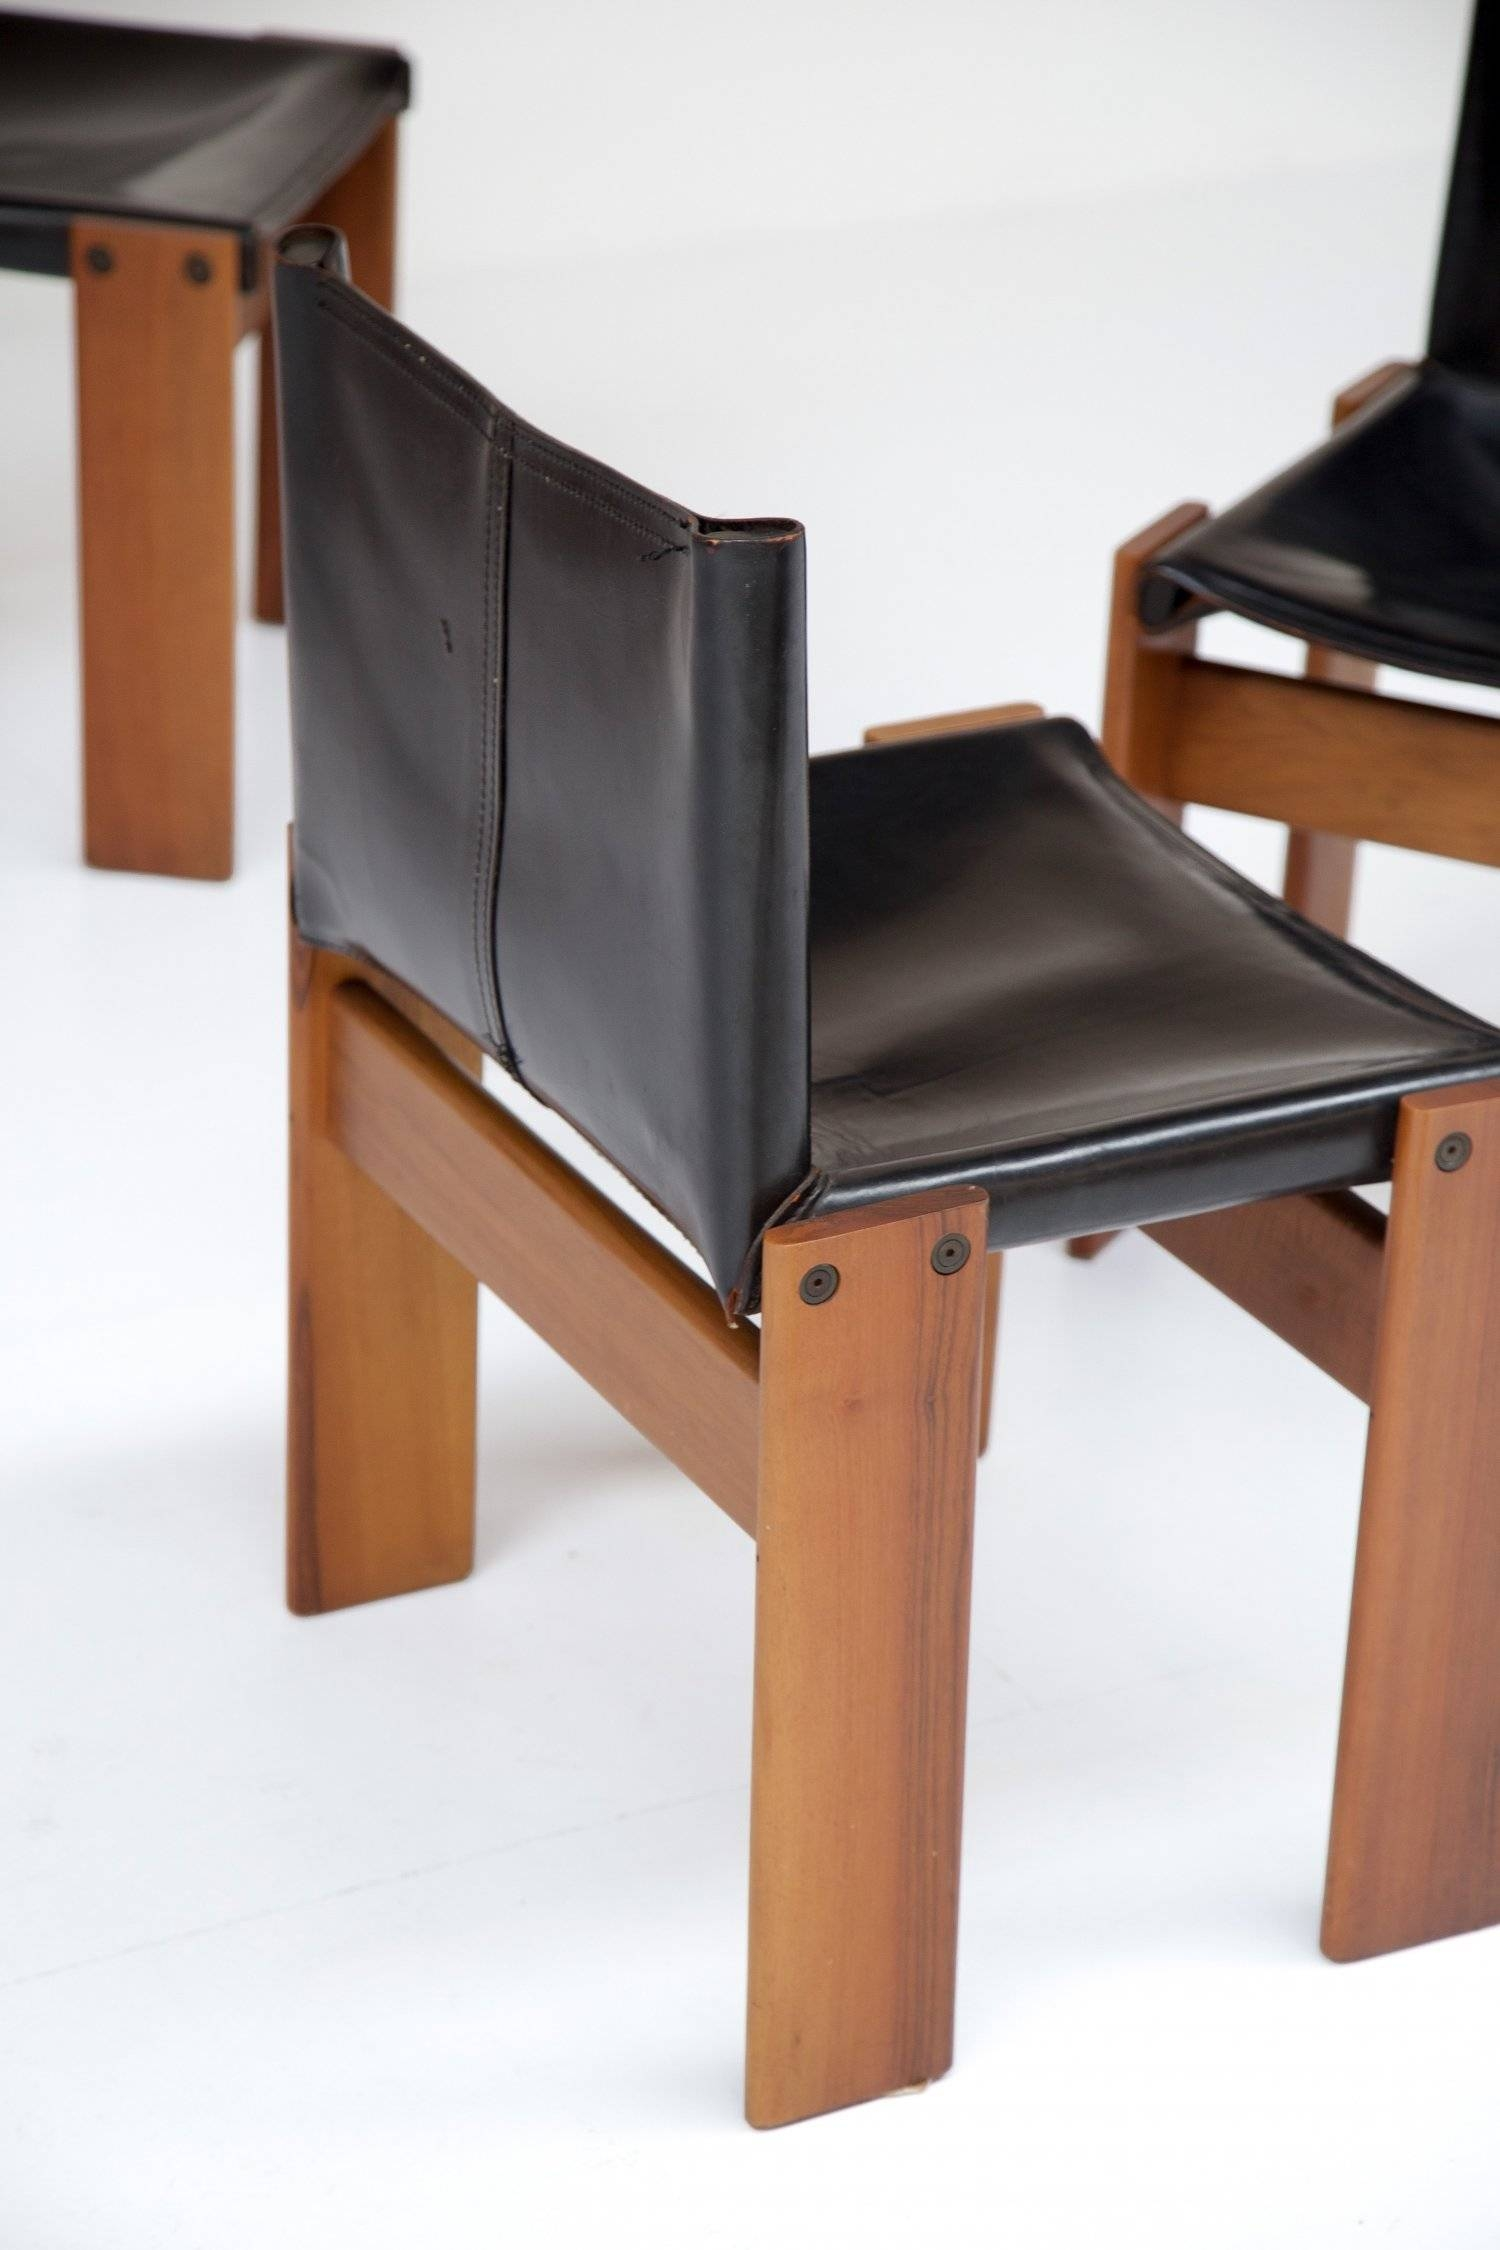 Monk Chairs Afra & Tobia Scarpa – Vanlandschoote Inside Monk Chairs (View 20 of 30)